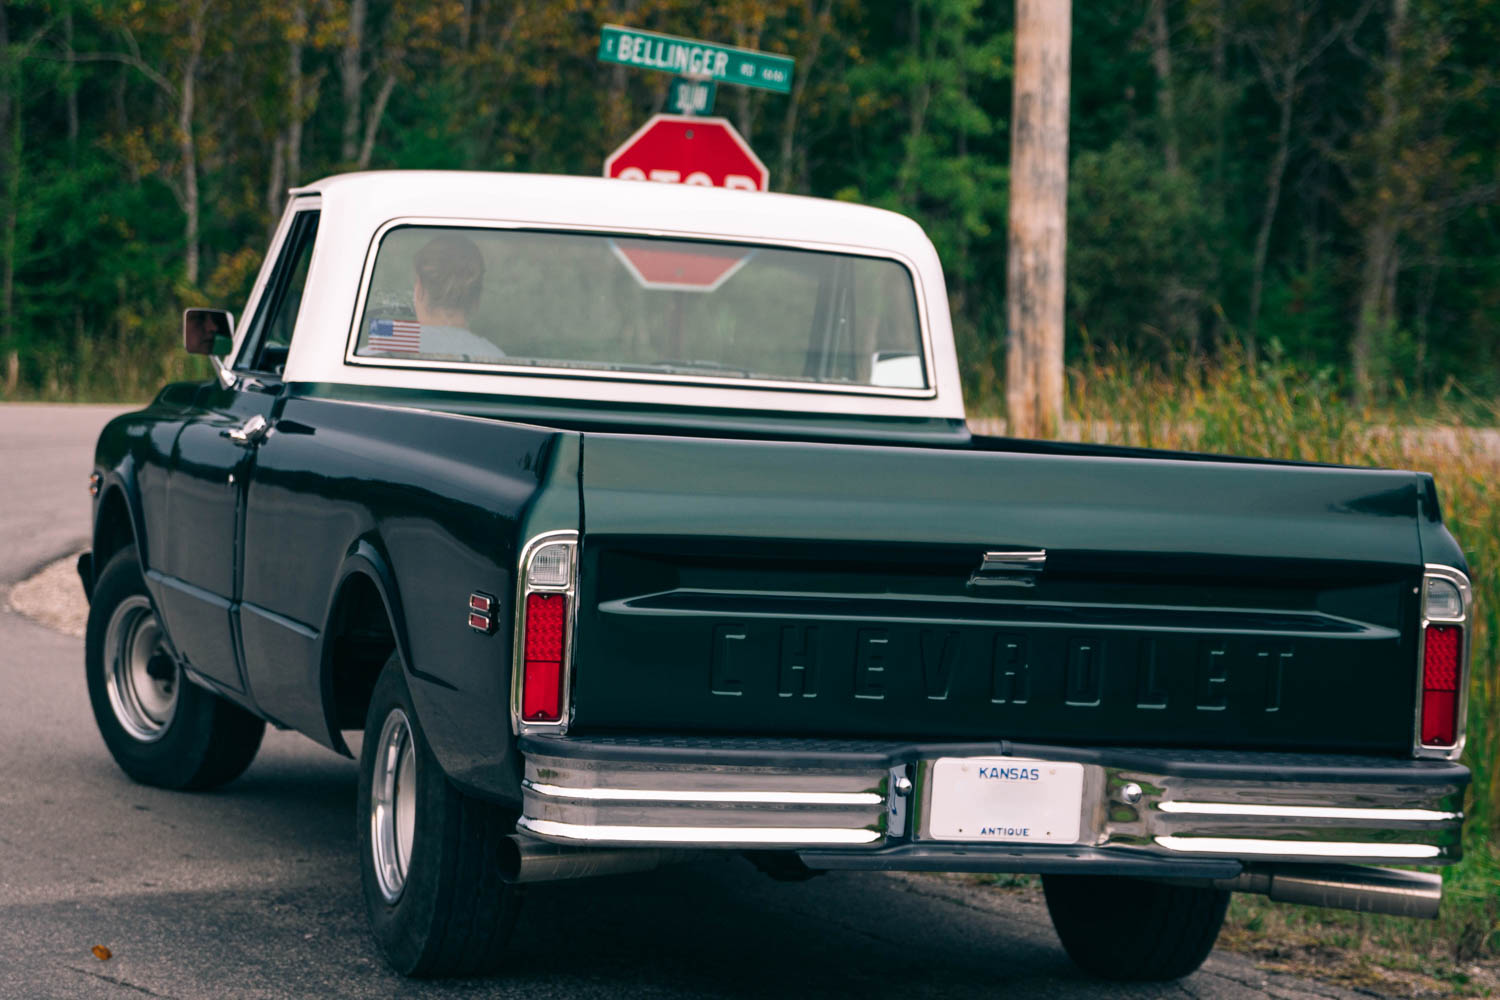 Kacy Smith's 1972 Chevy C10